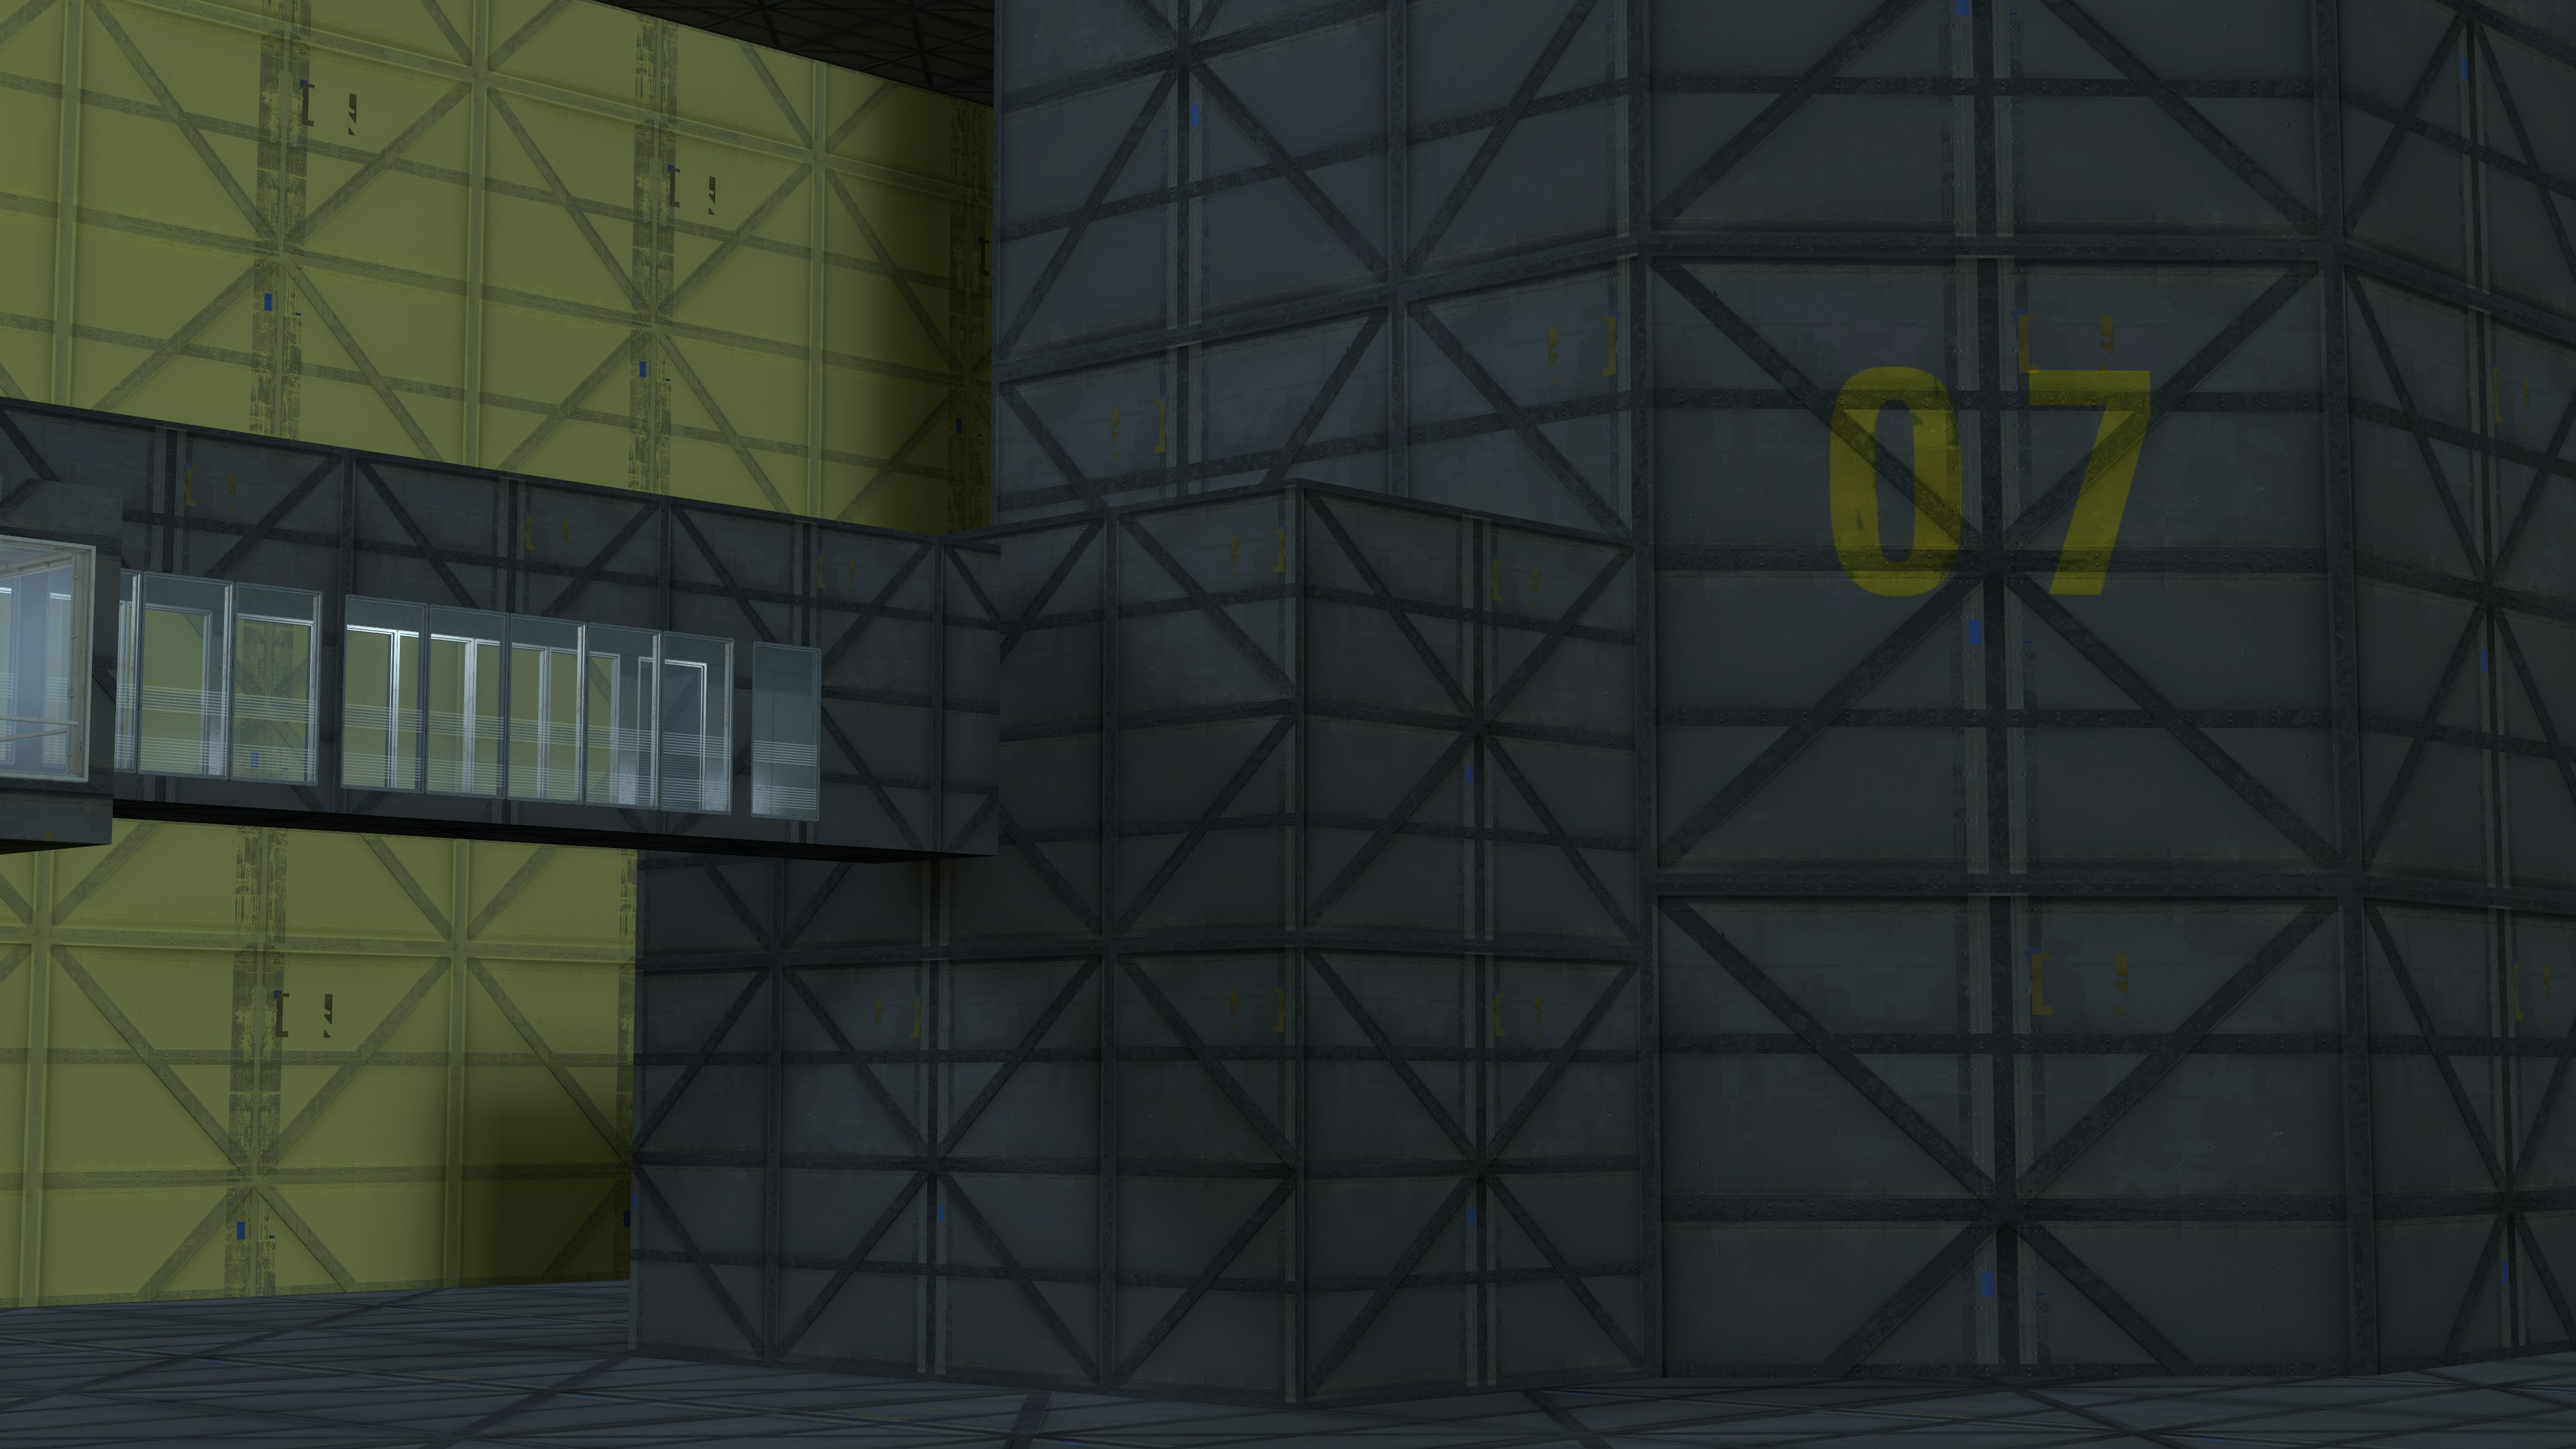 Early Alpha Glados Chamber Exterior Image Recreating